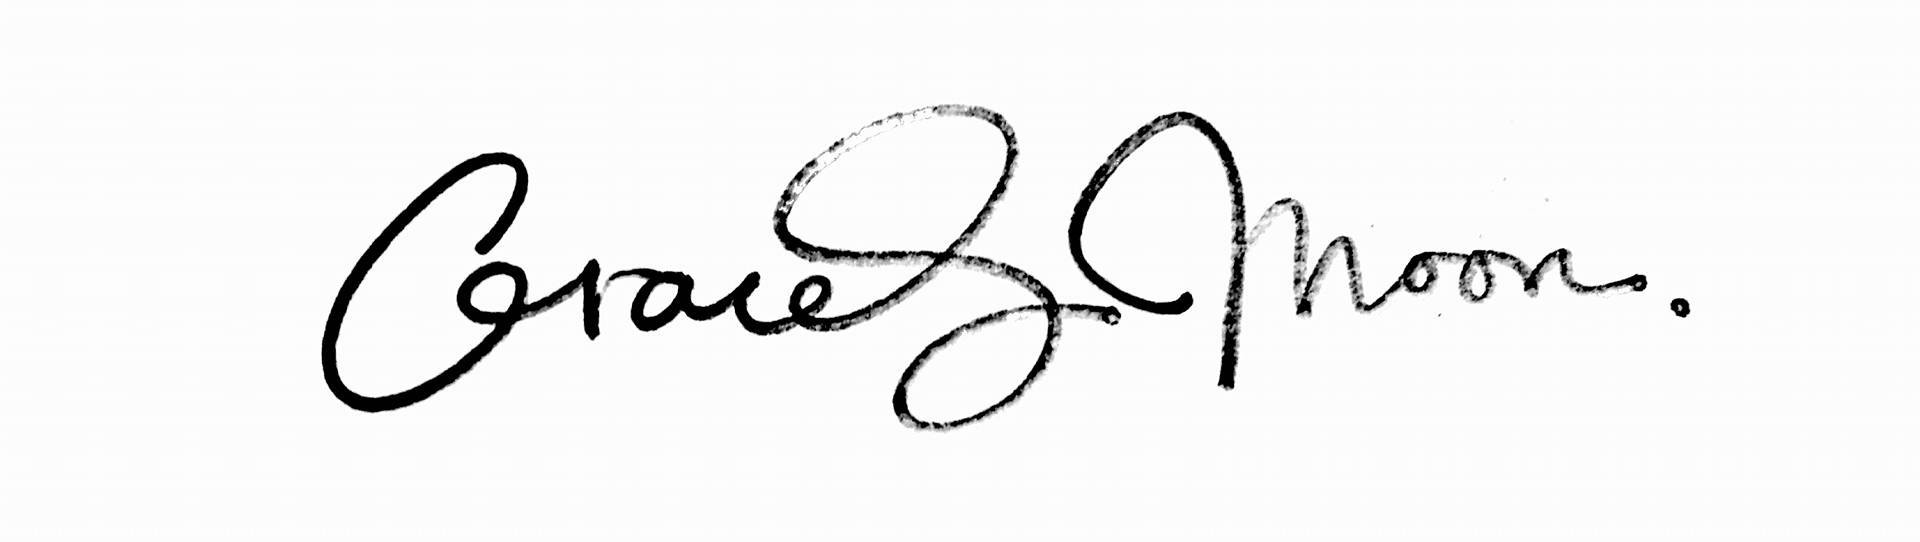 Grace Moon's Signature